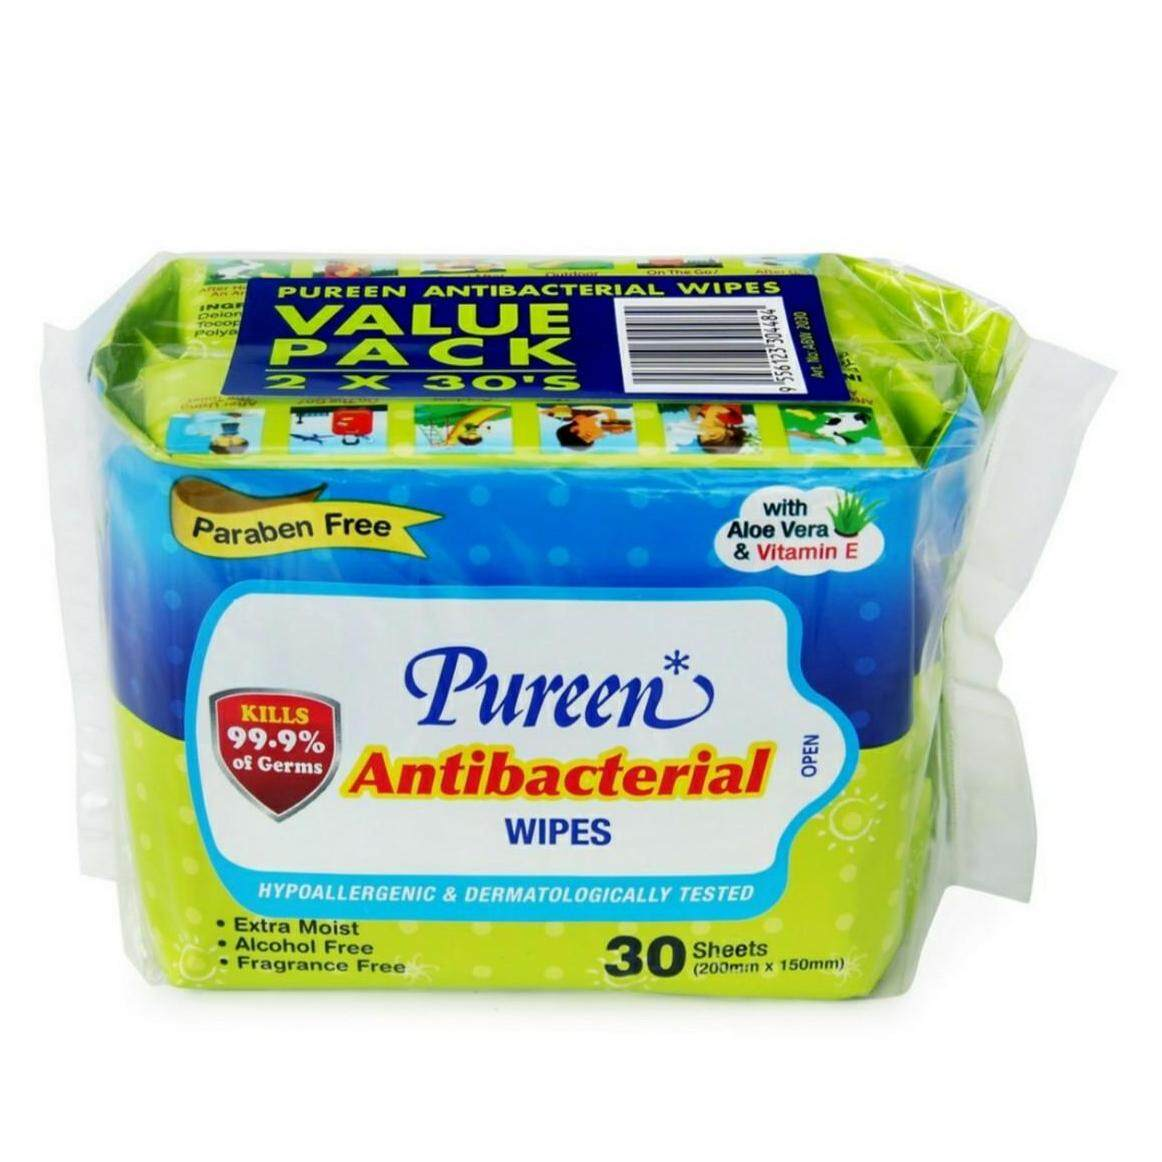 Pureen Antibacterial Wipes Fragrance Free 2 x 30's / Pureen Baby Wipes Fragrance Free (30's x 2) EXTRA MOIST